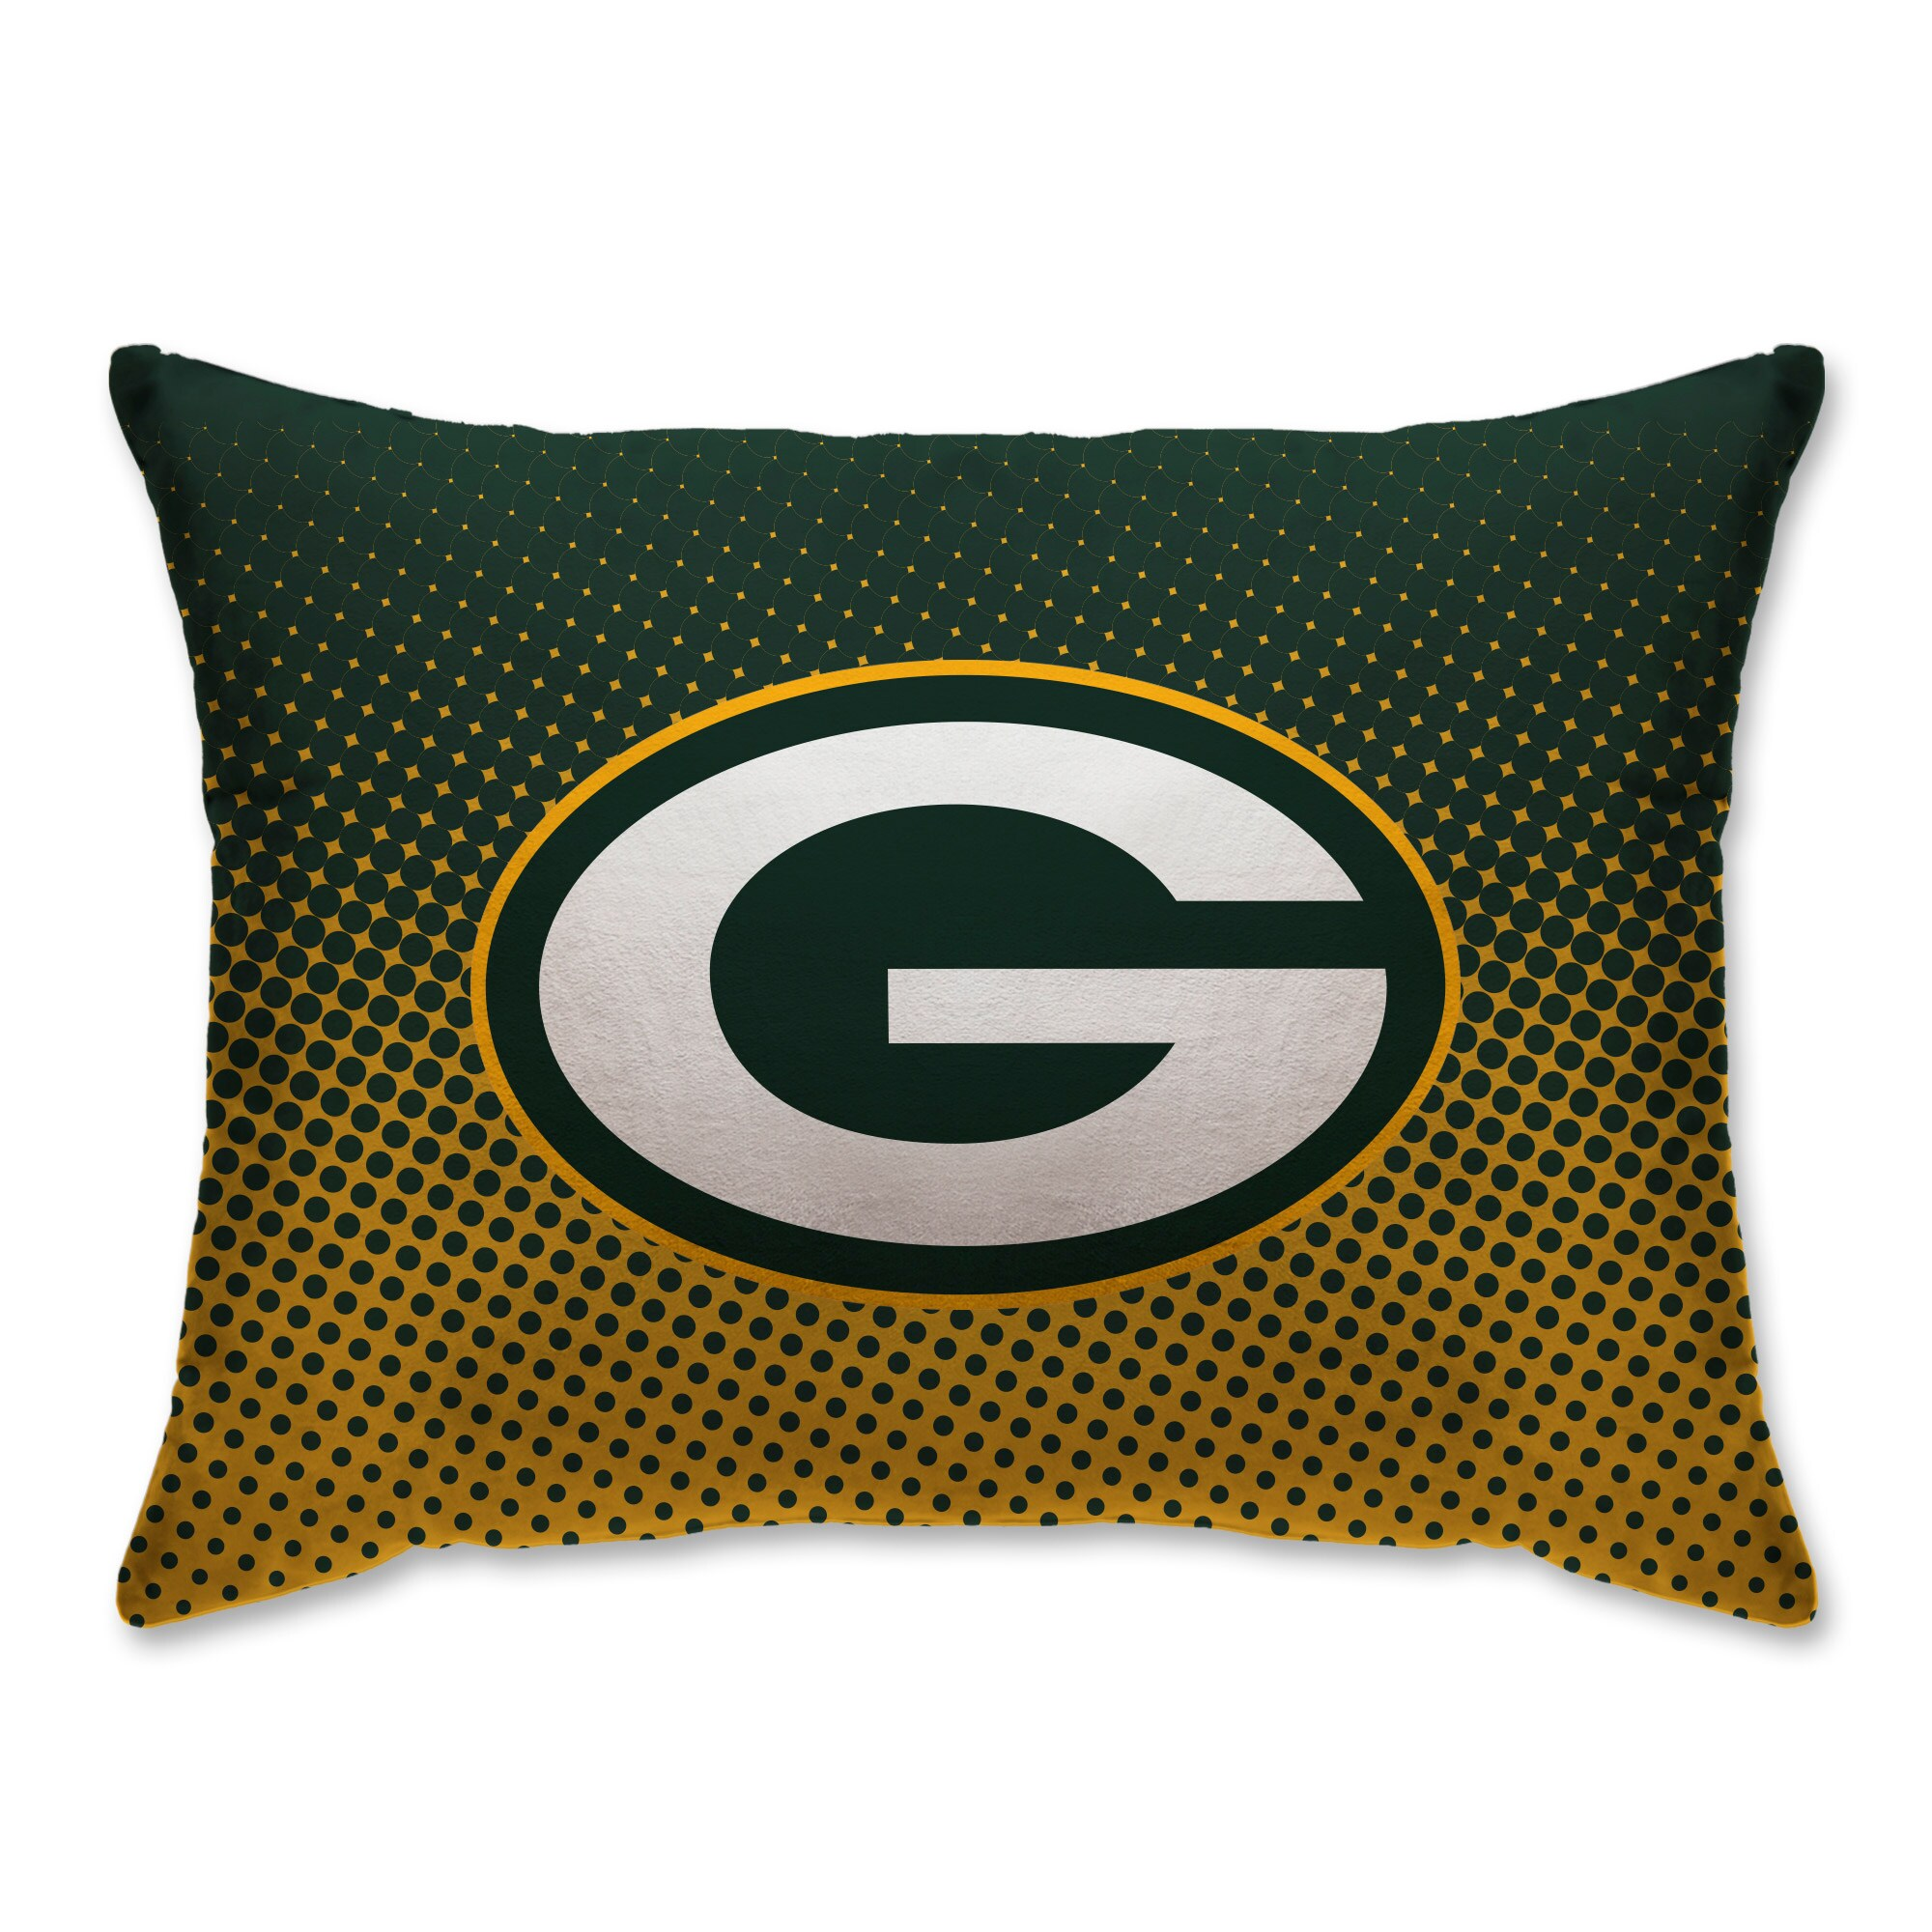 """Green Bay Packers 20"""" x 26"""" Dot Decorative Bed Pillow"""